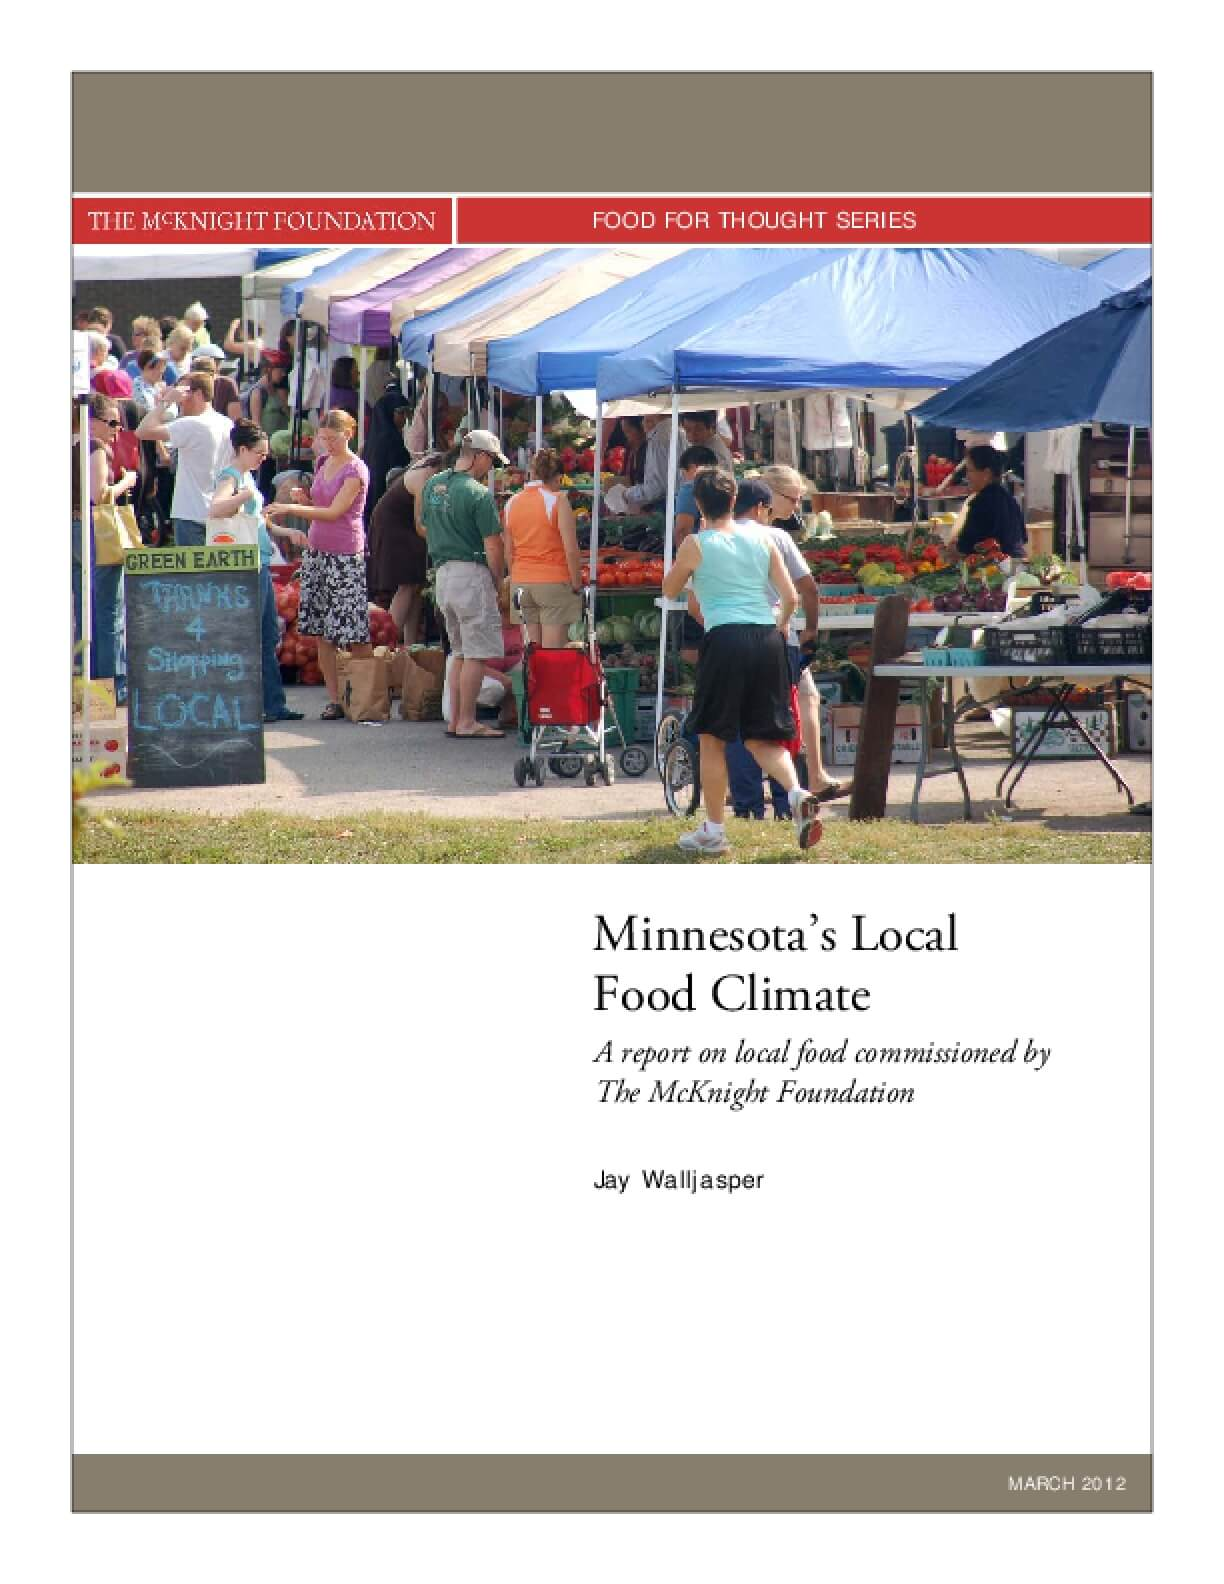 Minnesota's Local Food Climate